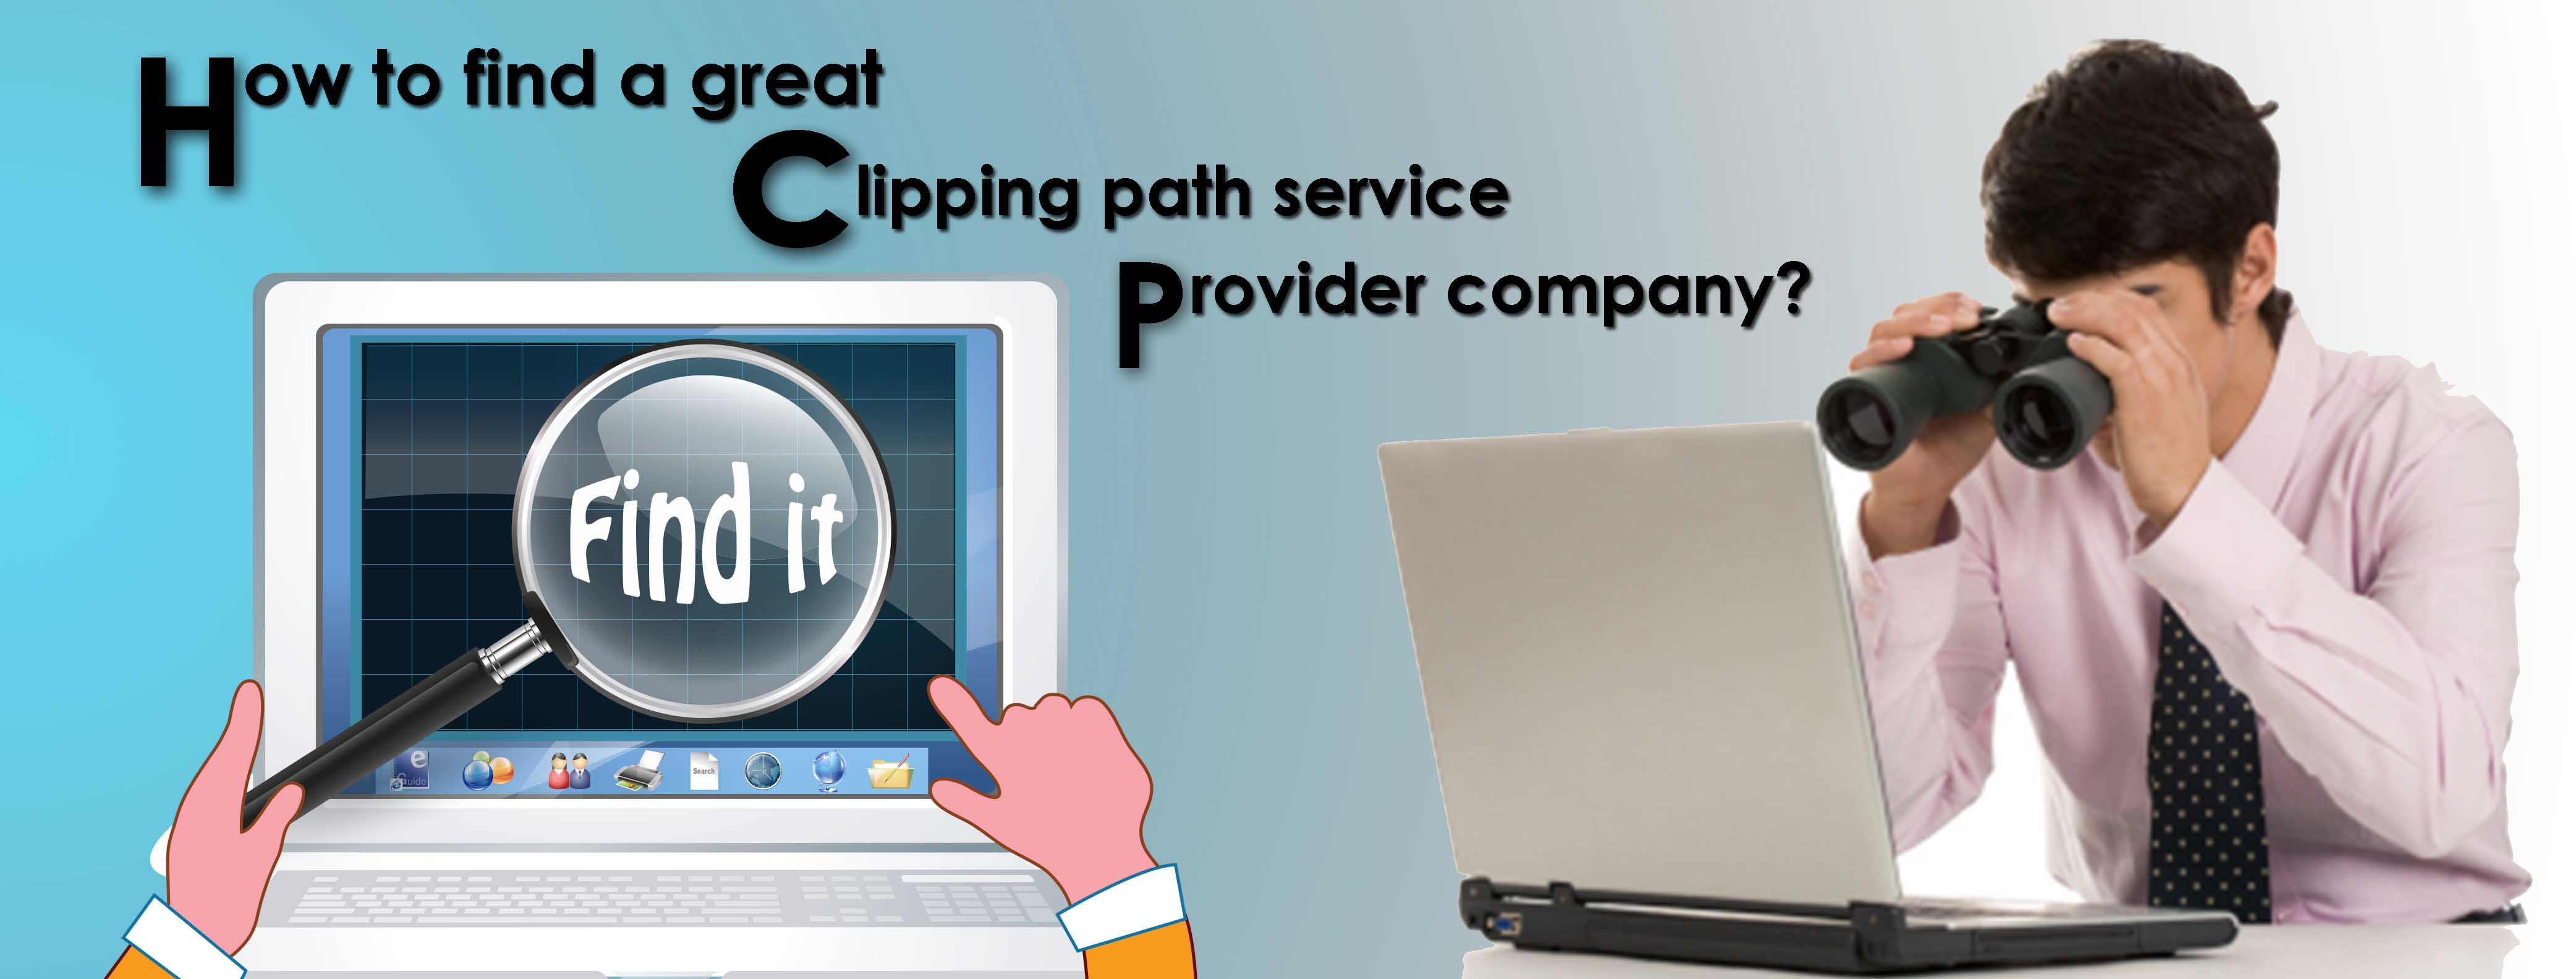 How to find a great clipping path service provider company?